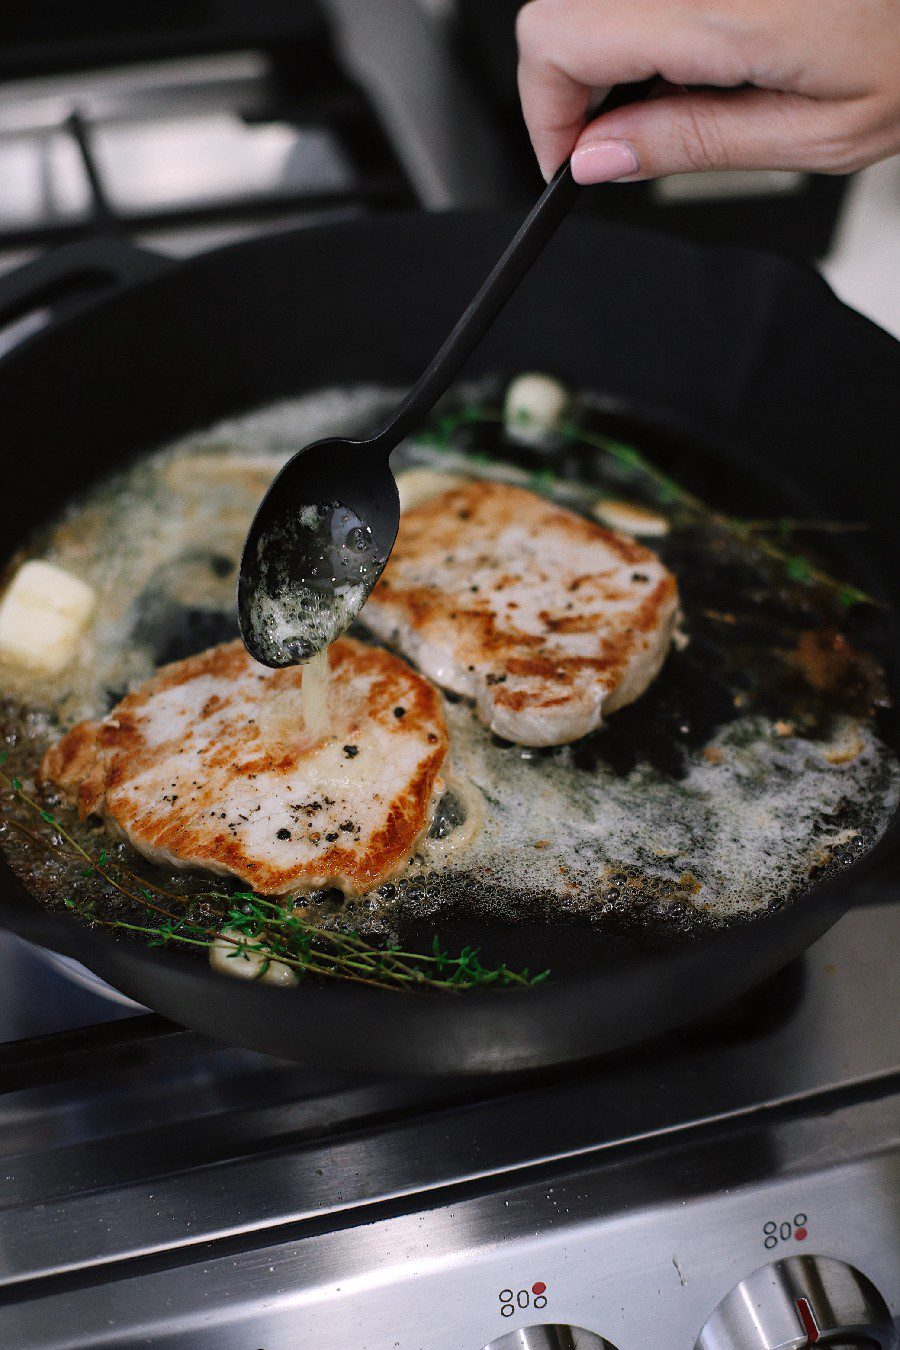 How To Cook Tender Skillet Pork Chops in the Oven What if I told you we figured out how to make sure to get those tender, juicy skillet pork chops every time, with a quick roast in the oven? Ready to say goodbye to dry, flavorless chops? These tips will have you adding tender pork chops back to your rotation. Try our pork chop recipe with browned butter garlic sauce!   Skillet Pork Chops by popular Florida lifestyle blog, Fresh Mommy Blog: image of a woman cooking skillet pork chops in her kitchen.